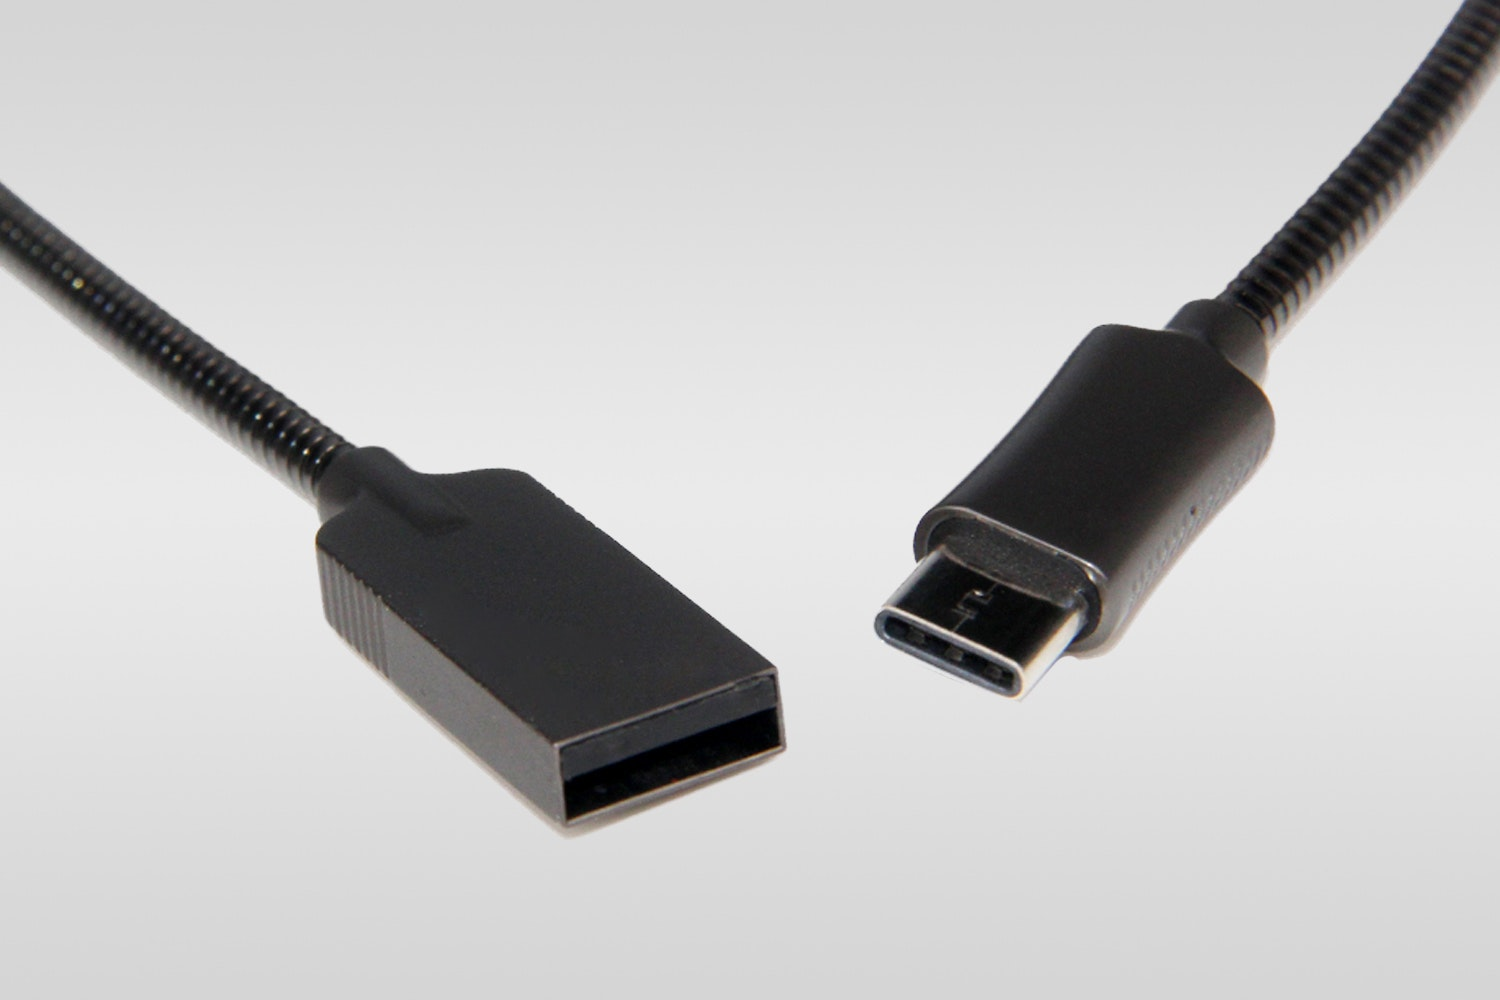 Plugies Stainless Steel USB Cables (2-Pack)